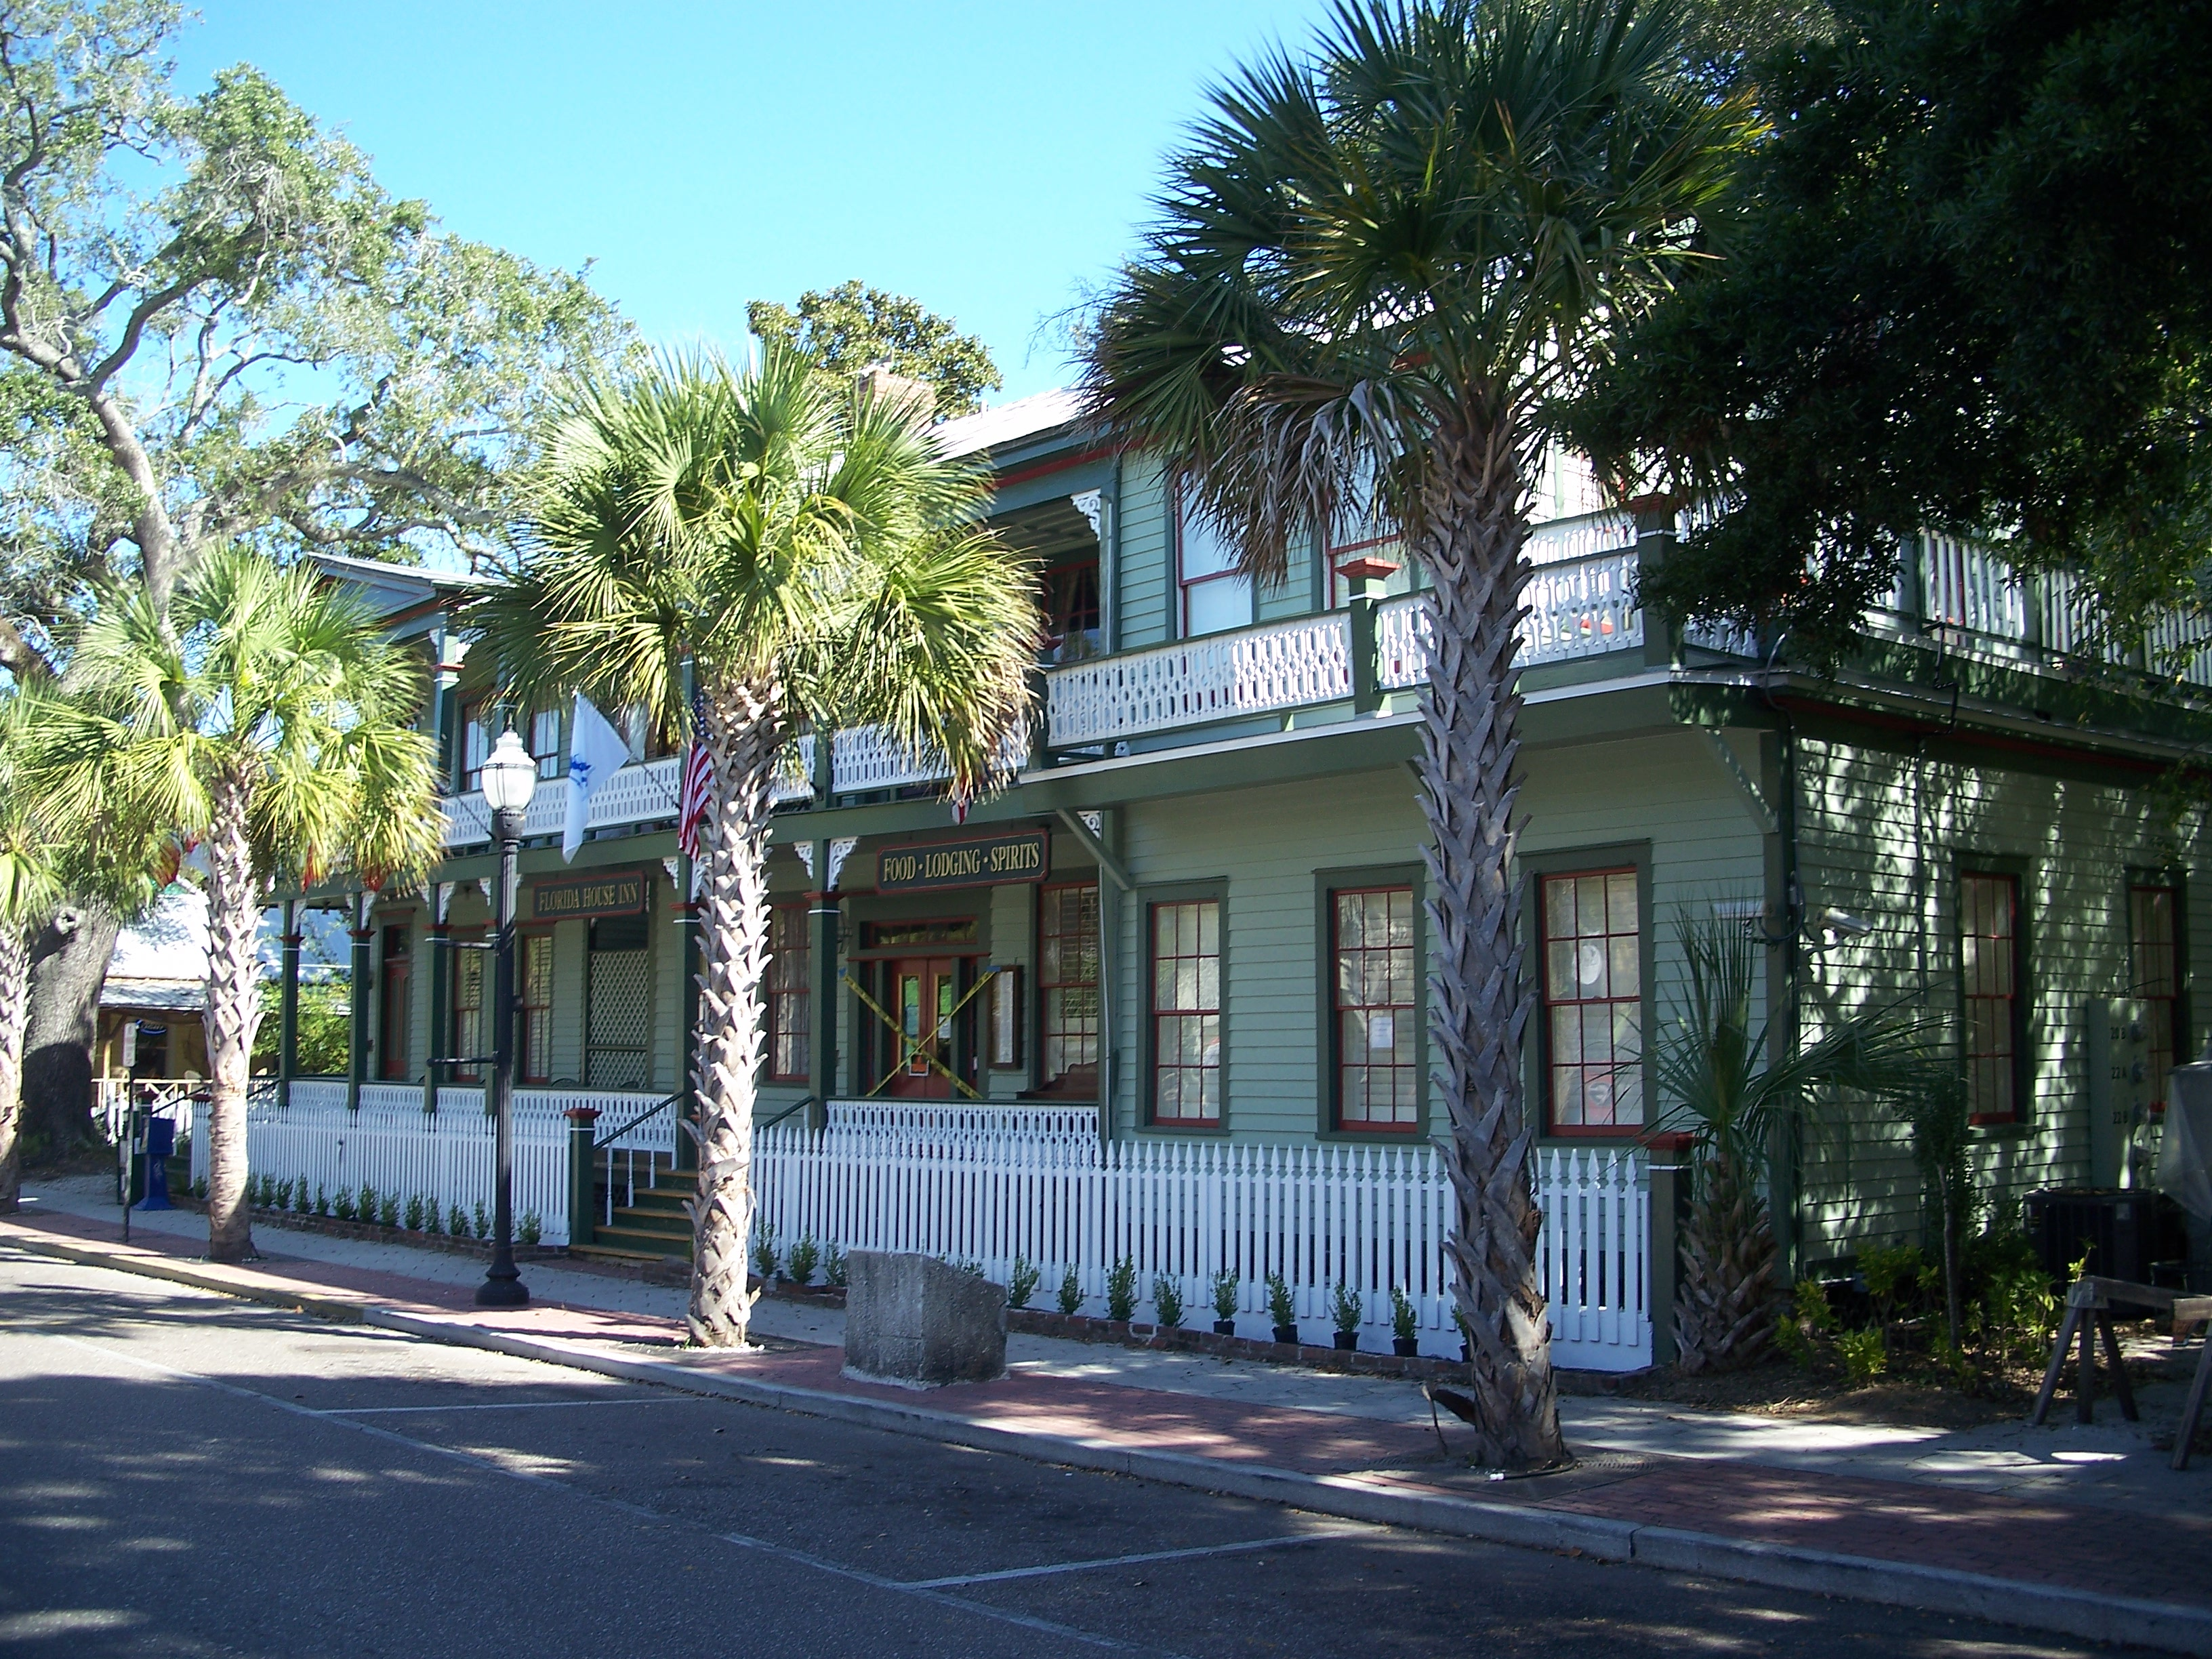 Al capone house pictures st augustine fl